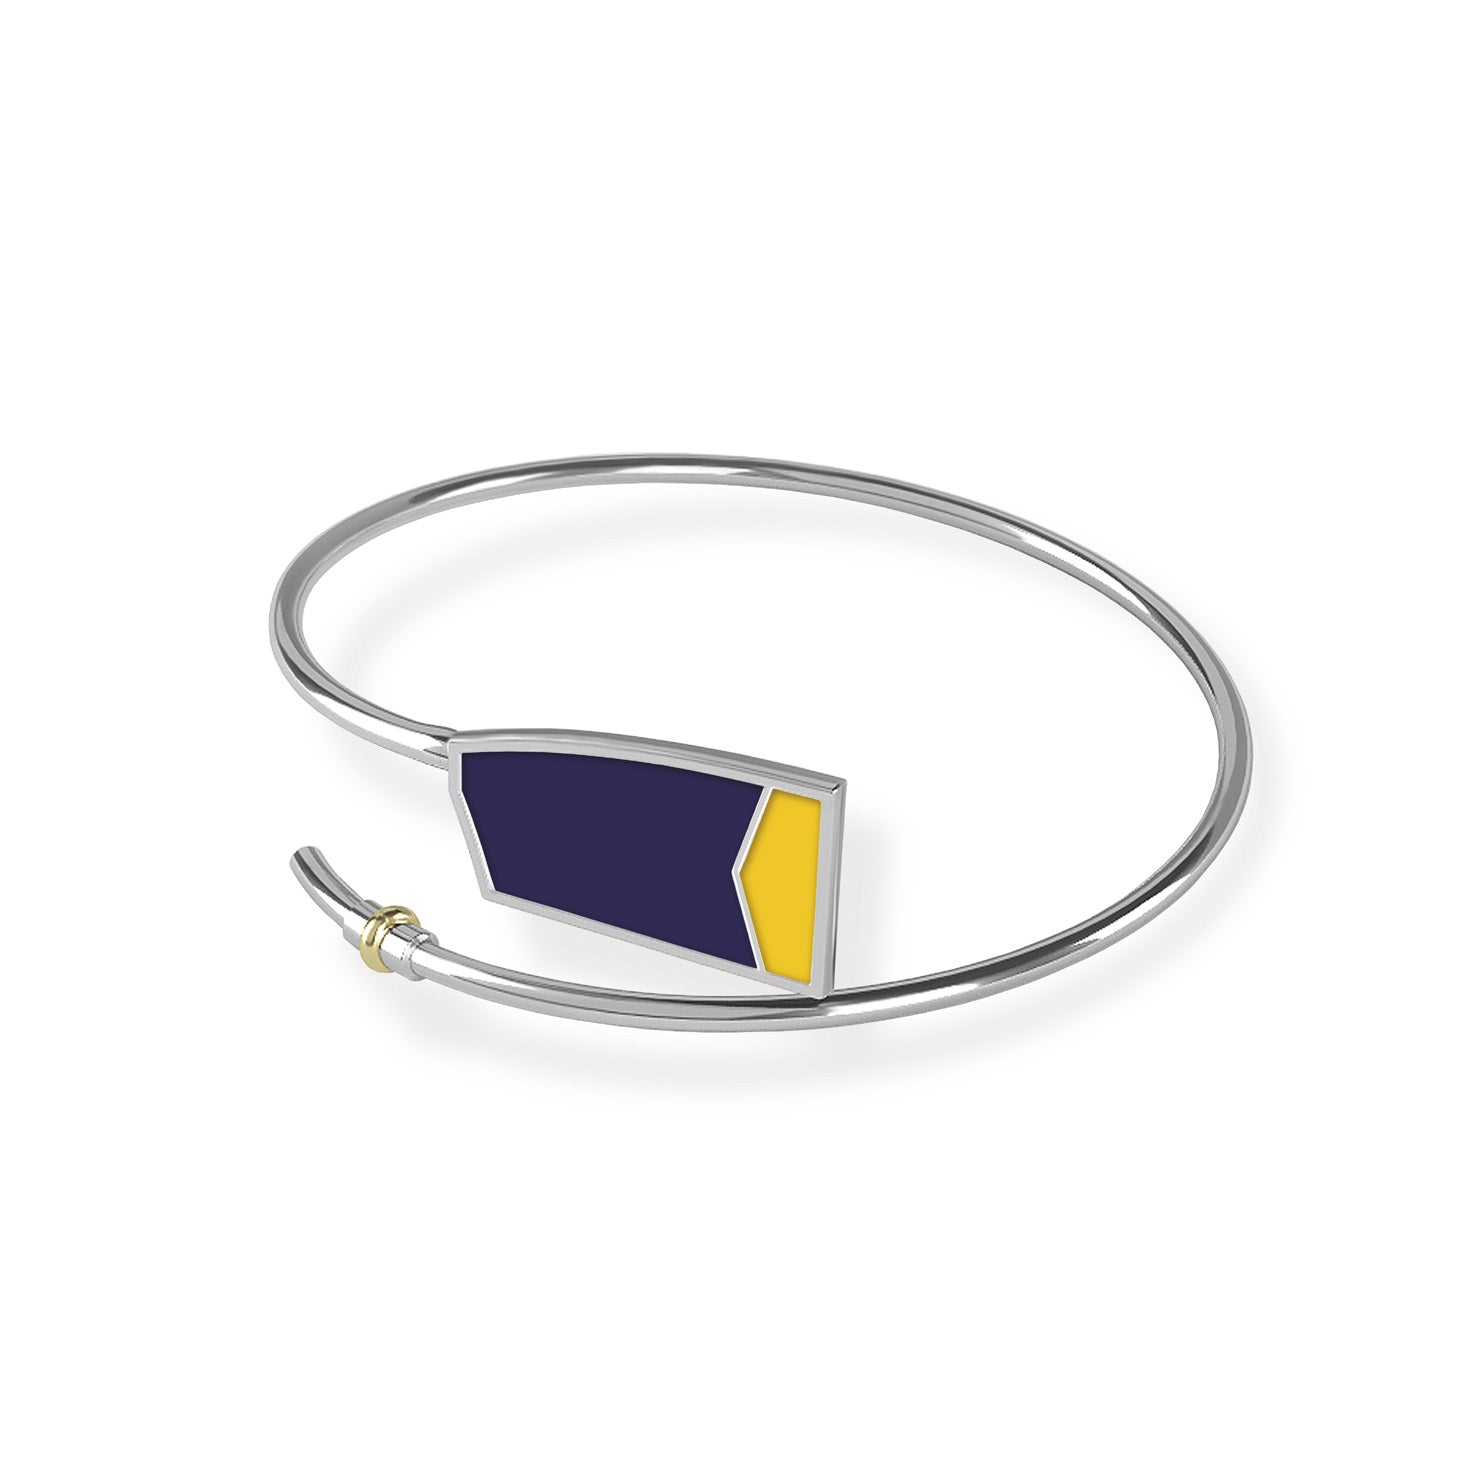 BCC Oar Bracelet - Strokeside Designs Rowing jewelry- Rowing Gifts Ideas- Rowing Coach Gifts